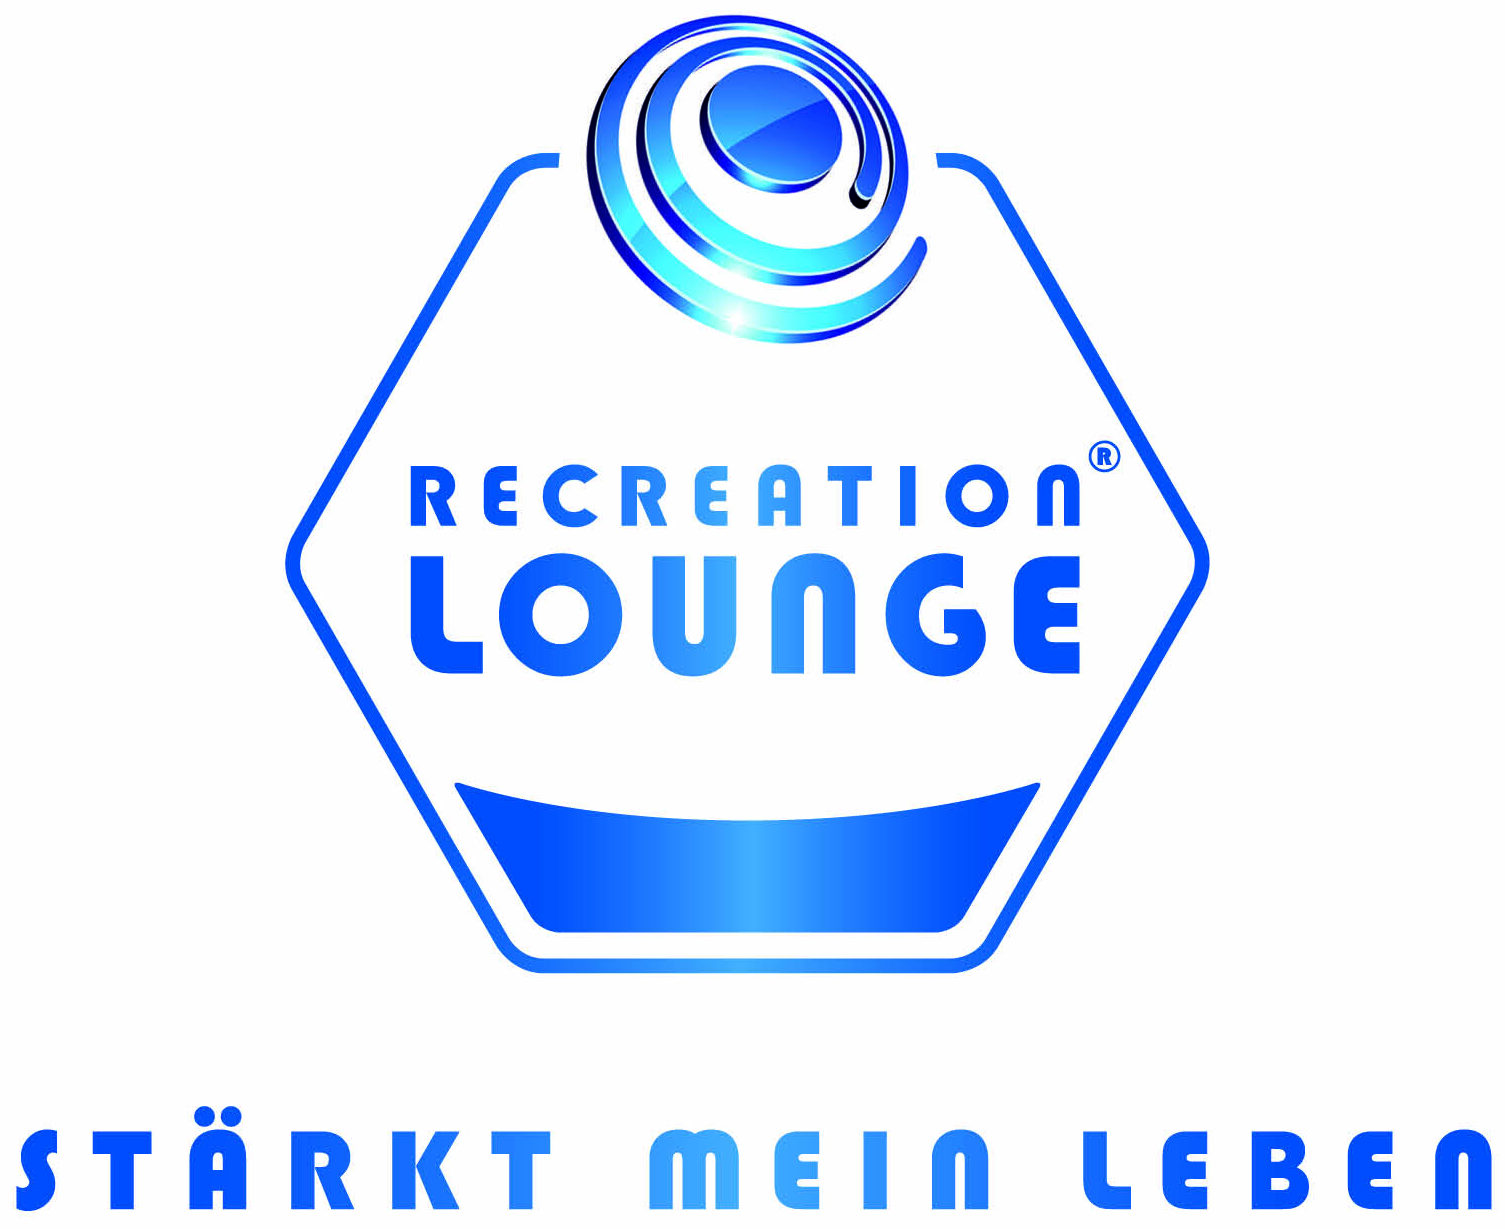 Recreation Lounge